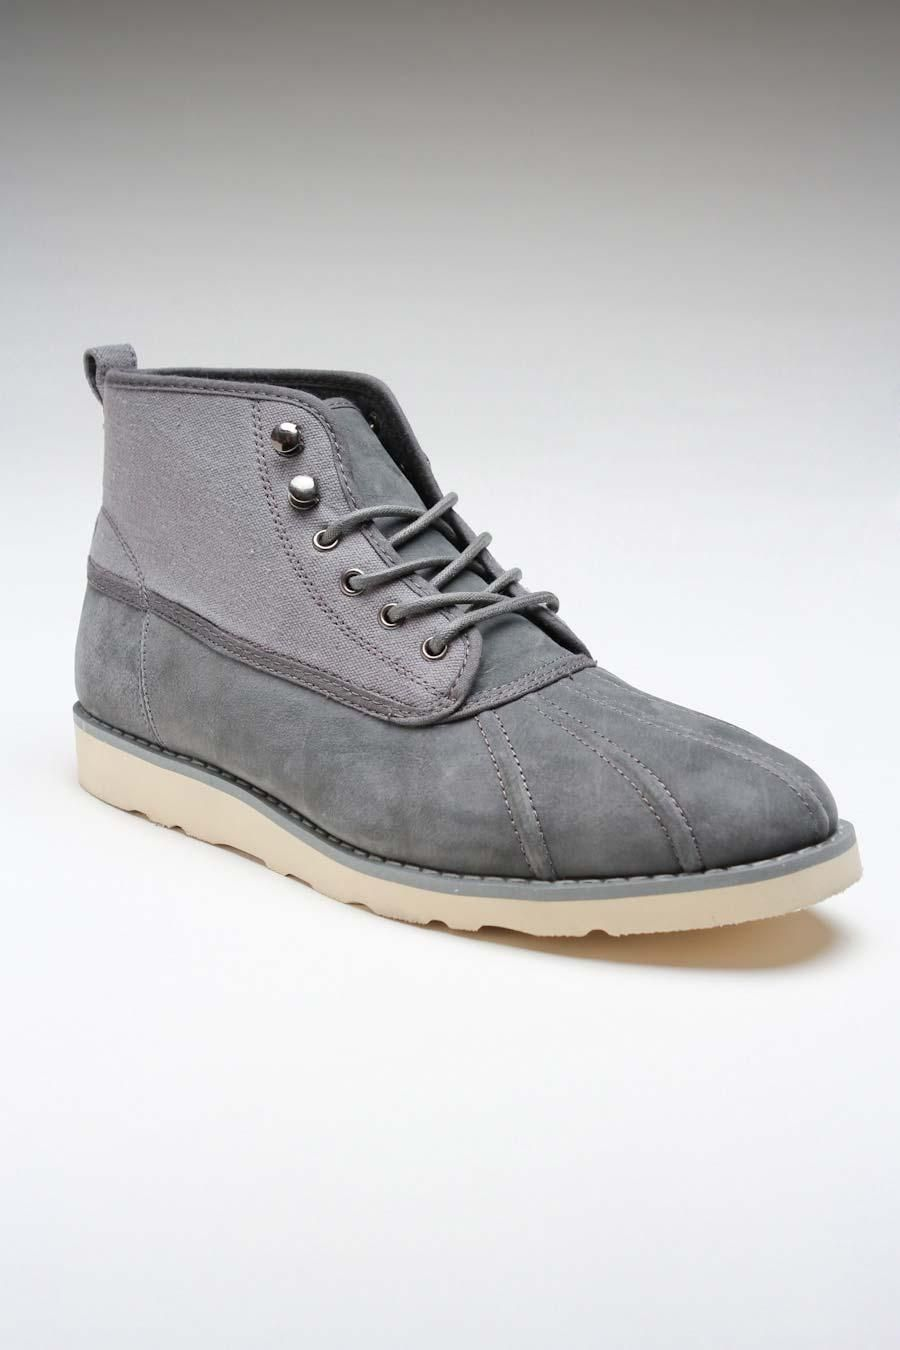 GENERIC SURPLUS DUCK BOOT CANVAS/NUBUCK, he really needs these